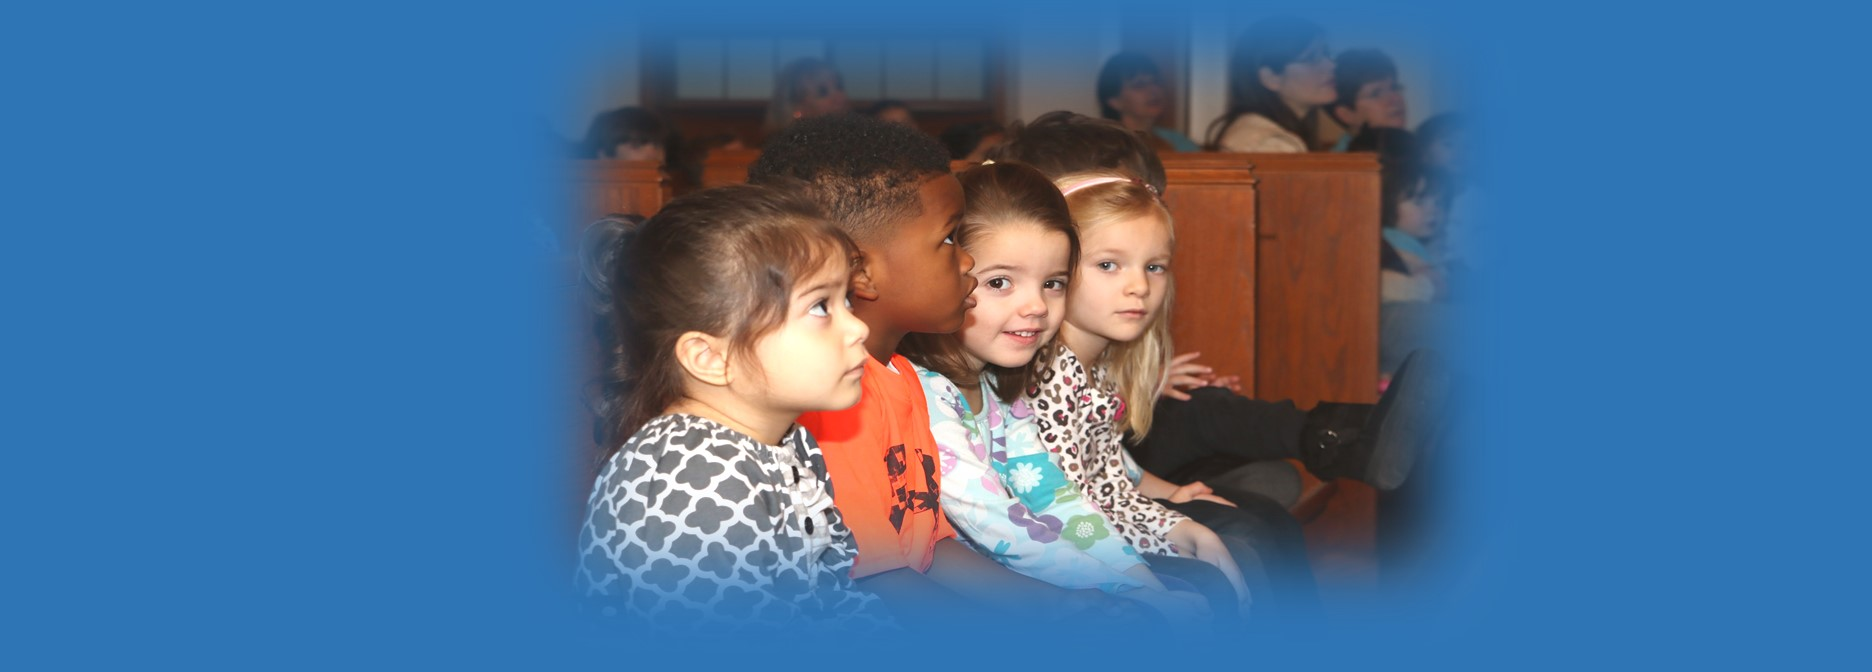 girl smiles at camera as st paul lutheran school early childhood center students listen during weekly chapel service